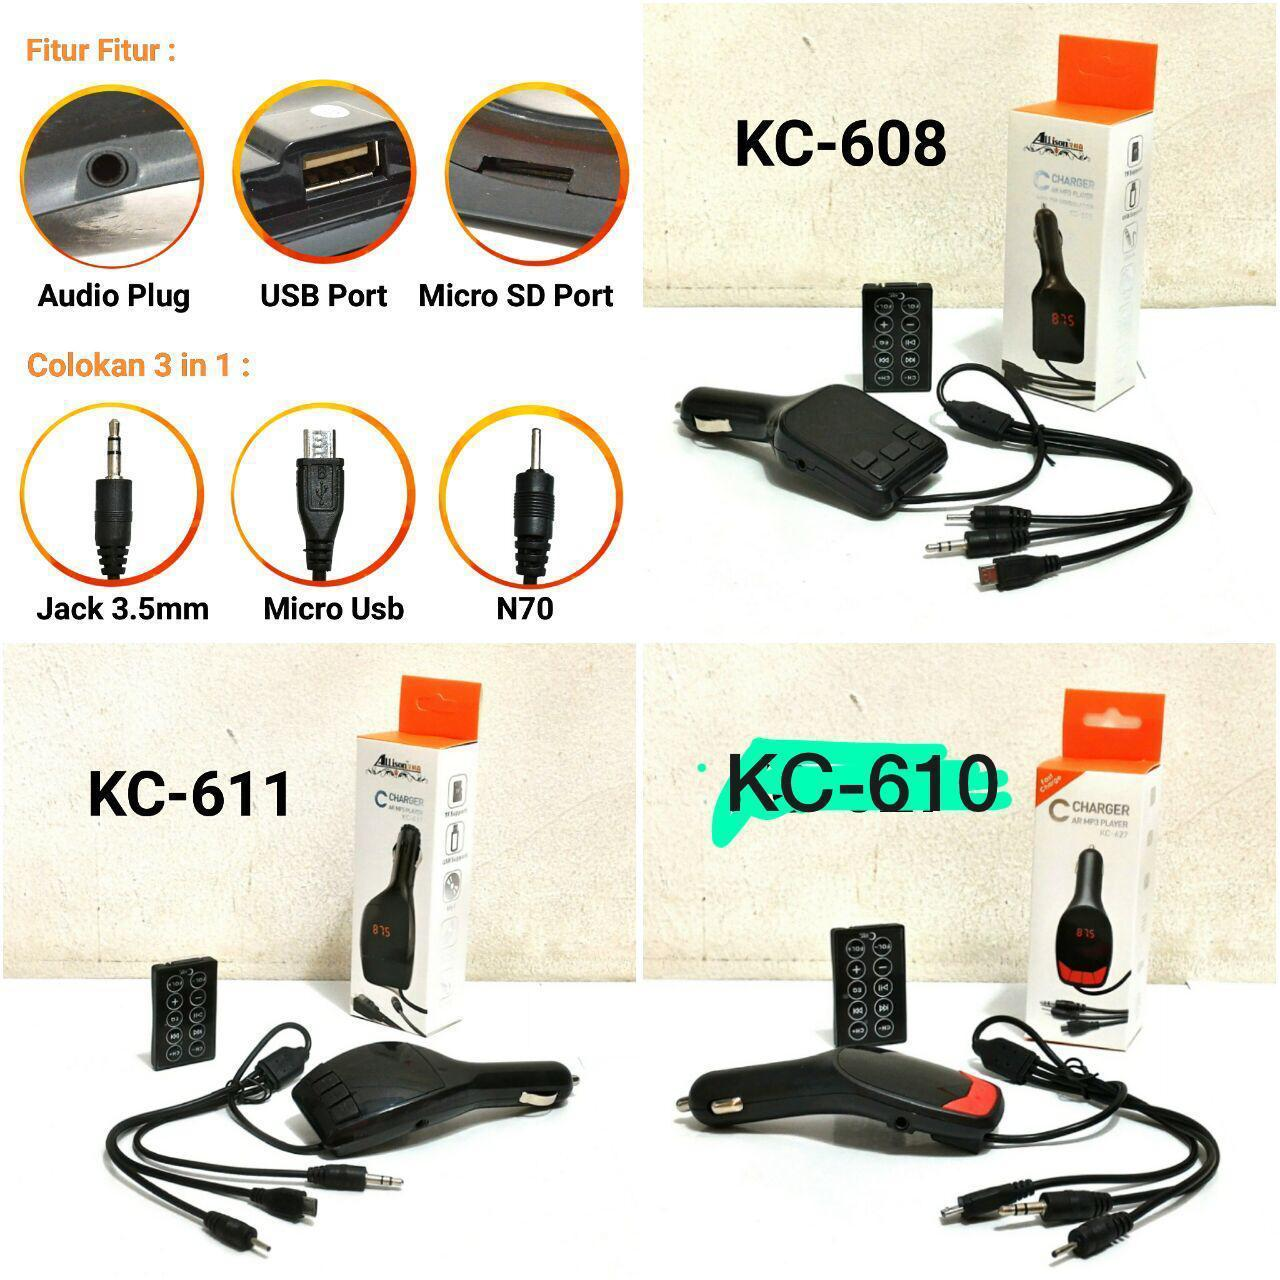 Modulator = Kabel Charger